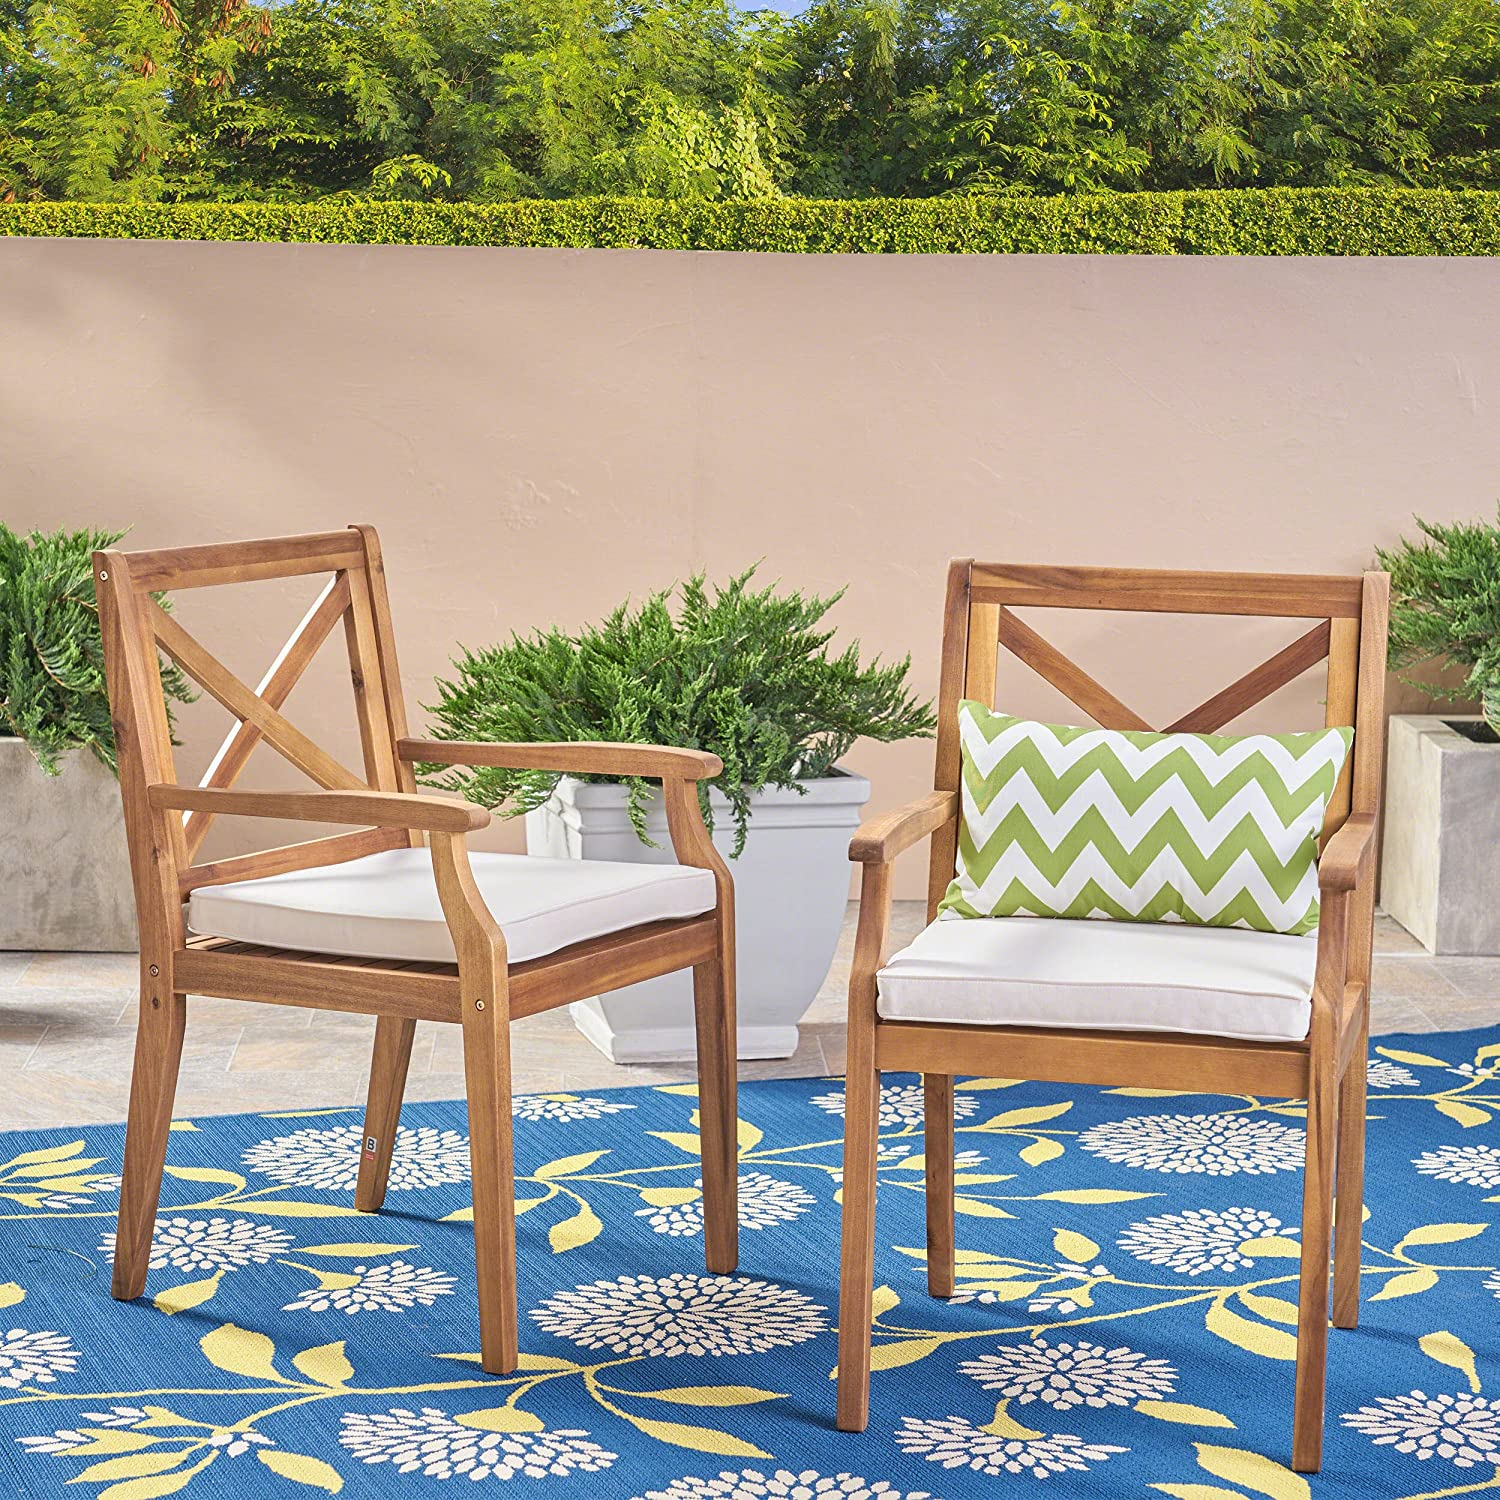 Christopher Knight Home 304680 Peter   Outdoor Acacia Wood Dining Chair Set of 2, Teak/Cream Cushion : Garden & Outdoor